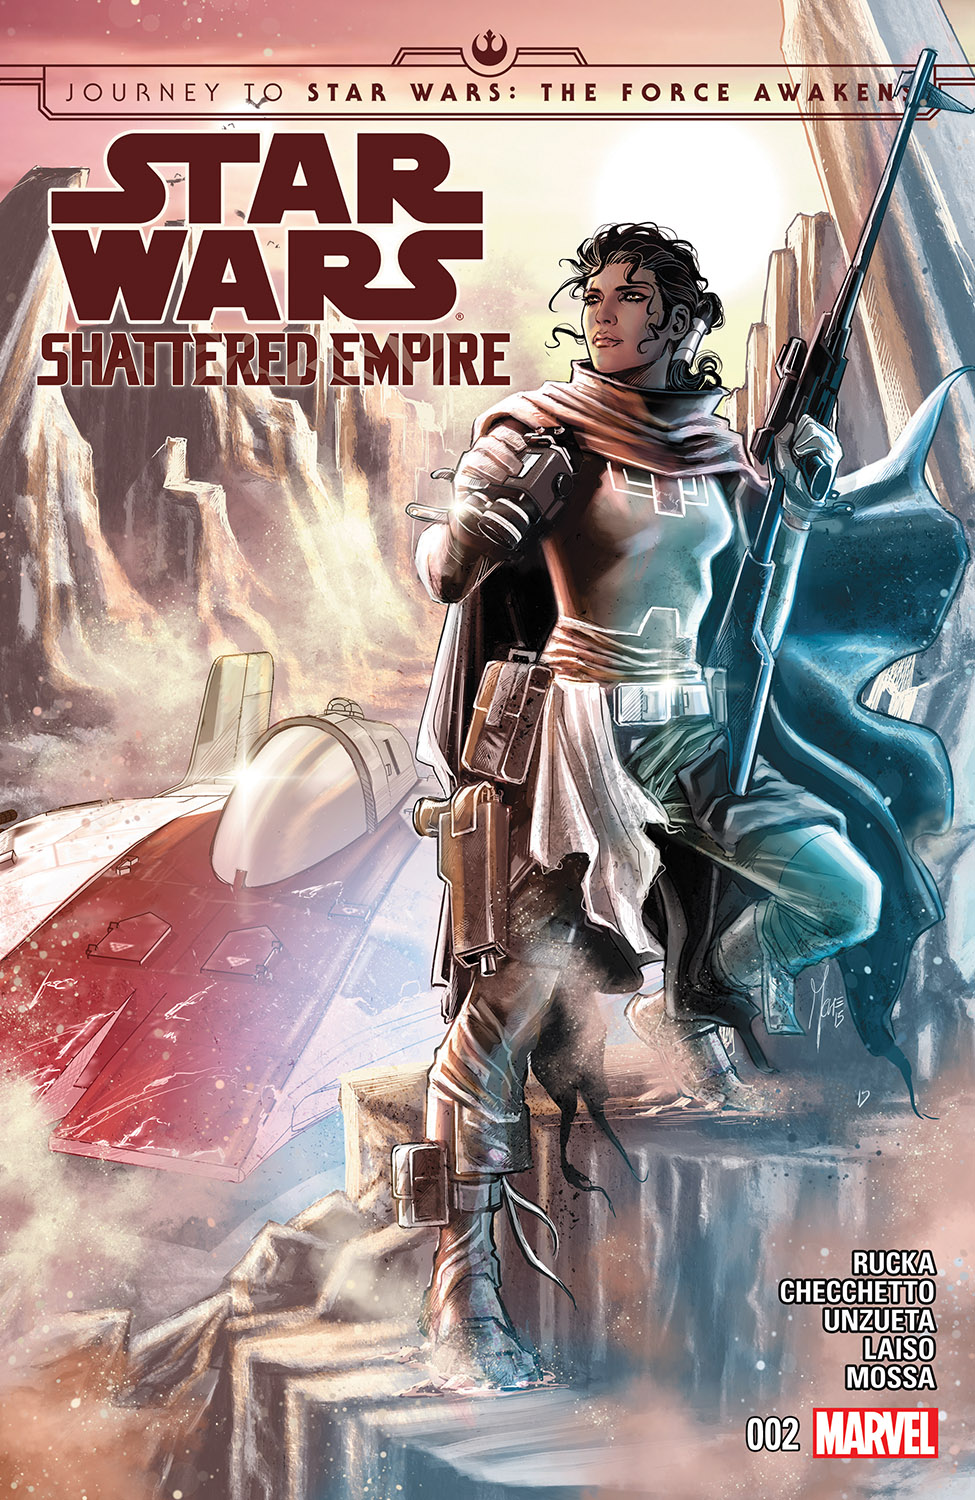 Journey to Star Wars: The Force Awakens - Shattered Empire (2015) #2